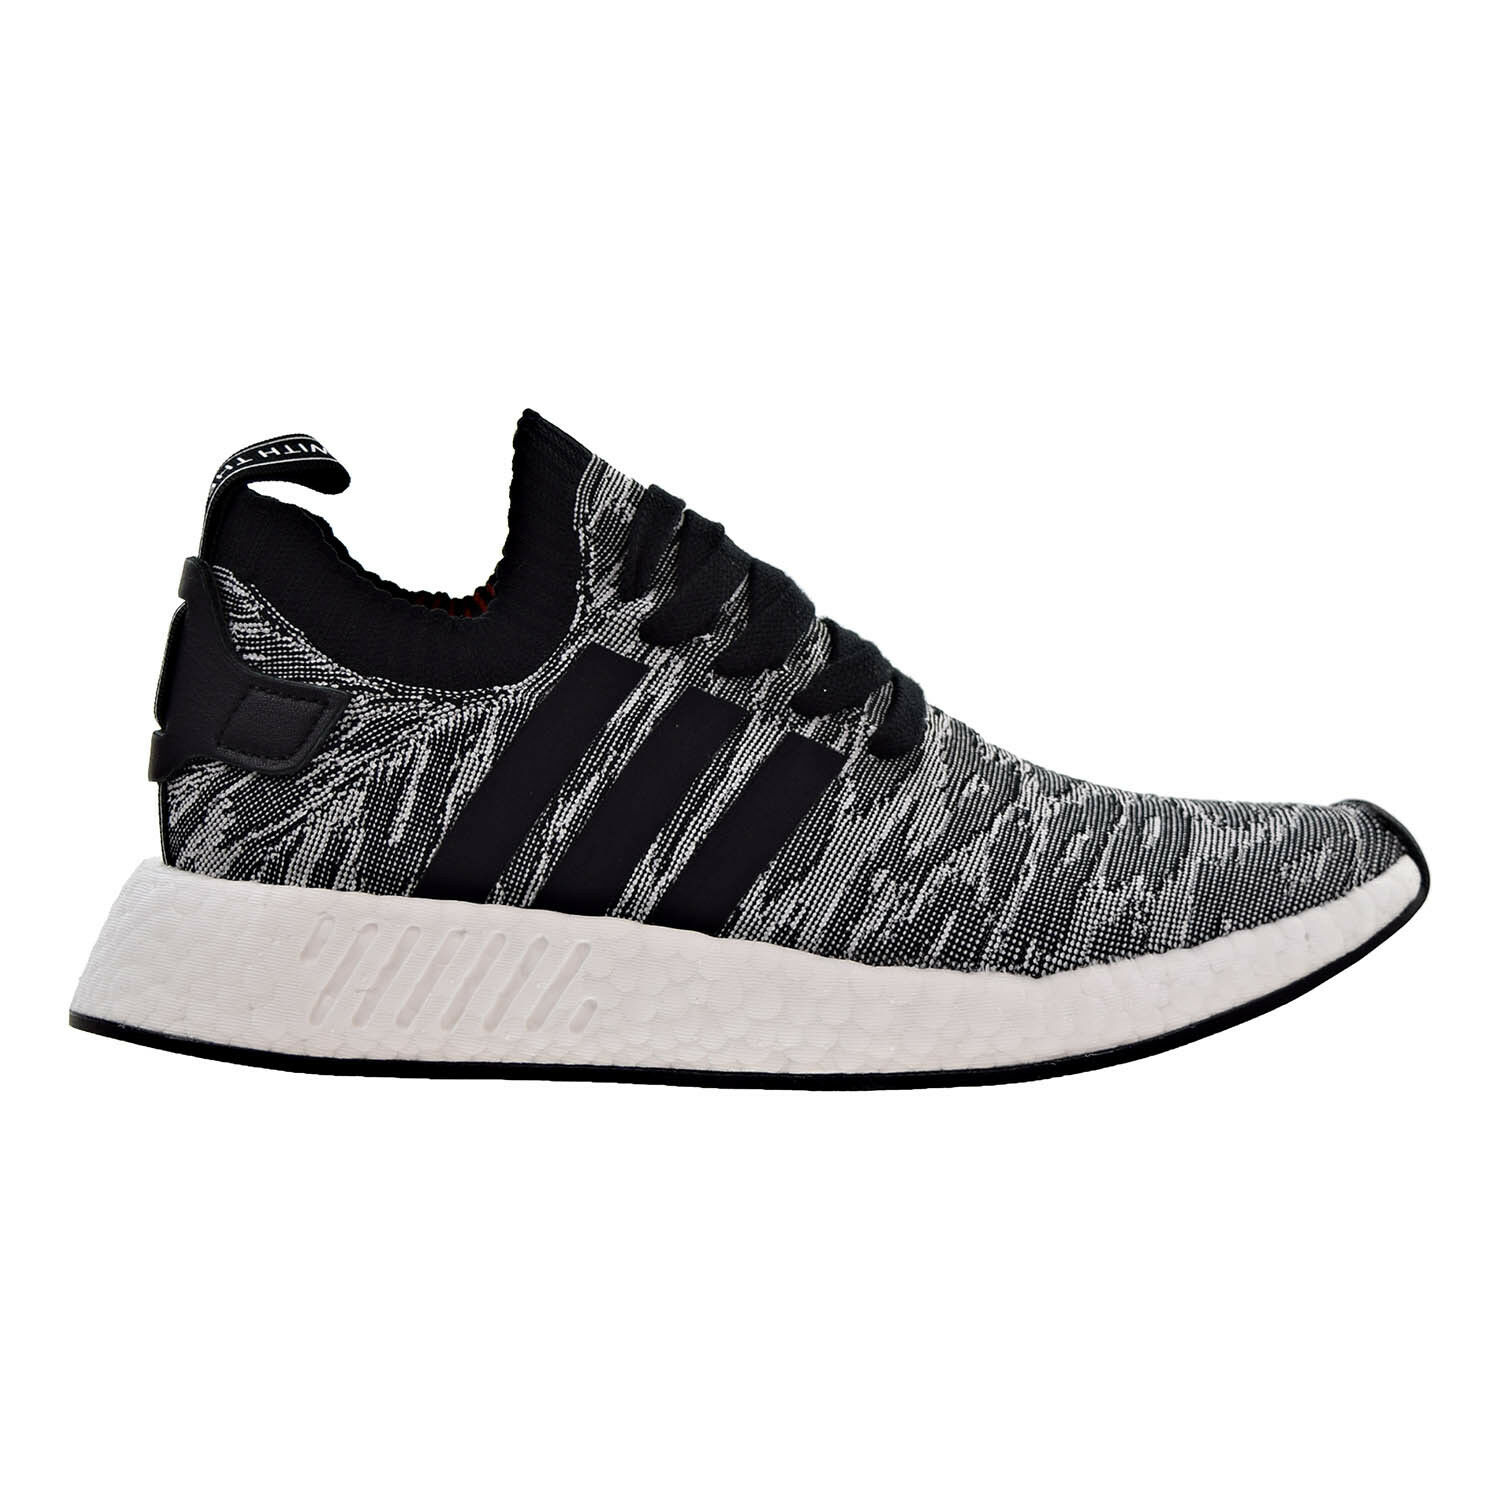 Adidas nmd_r2 primeknit hombres zapatos by9409 negro / blanco running by9409 zapatos Core d2066f